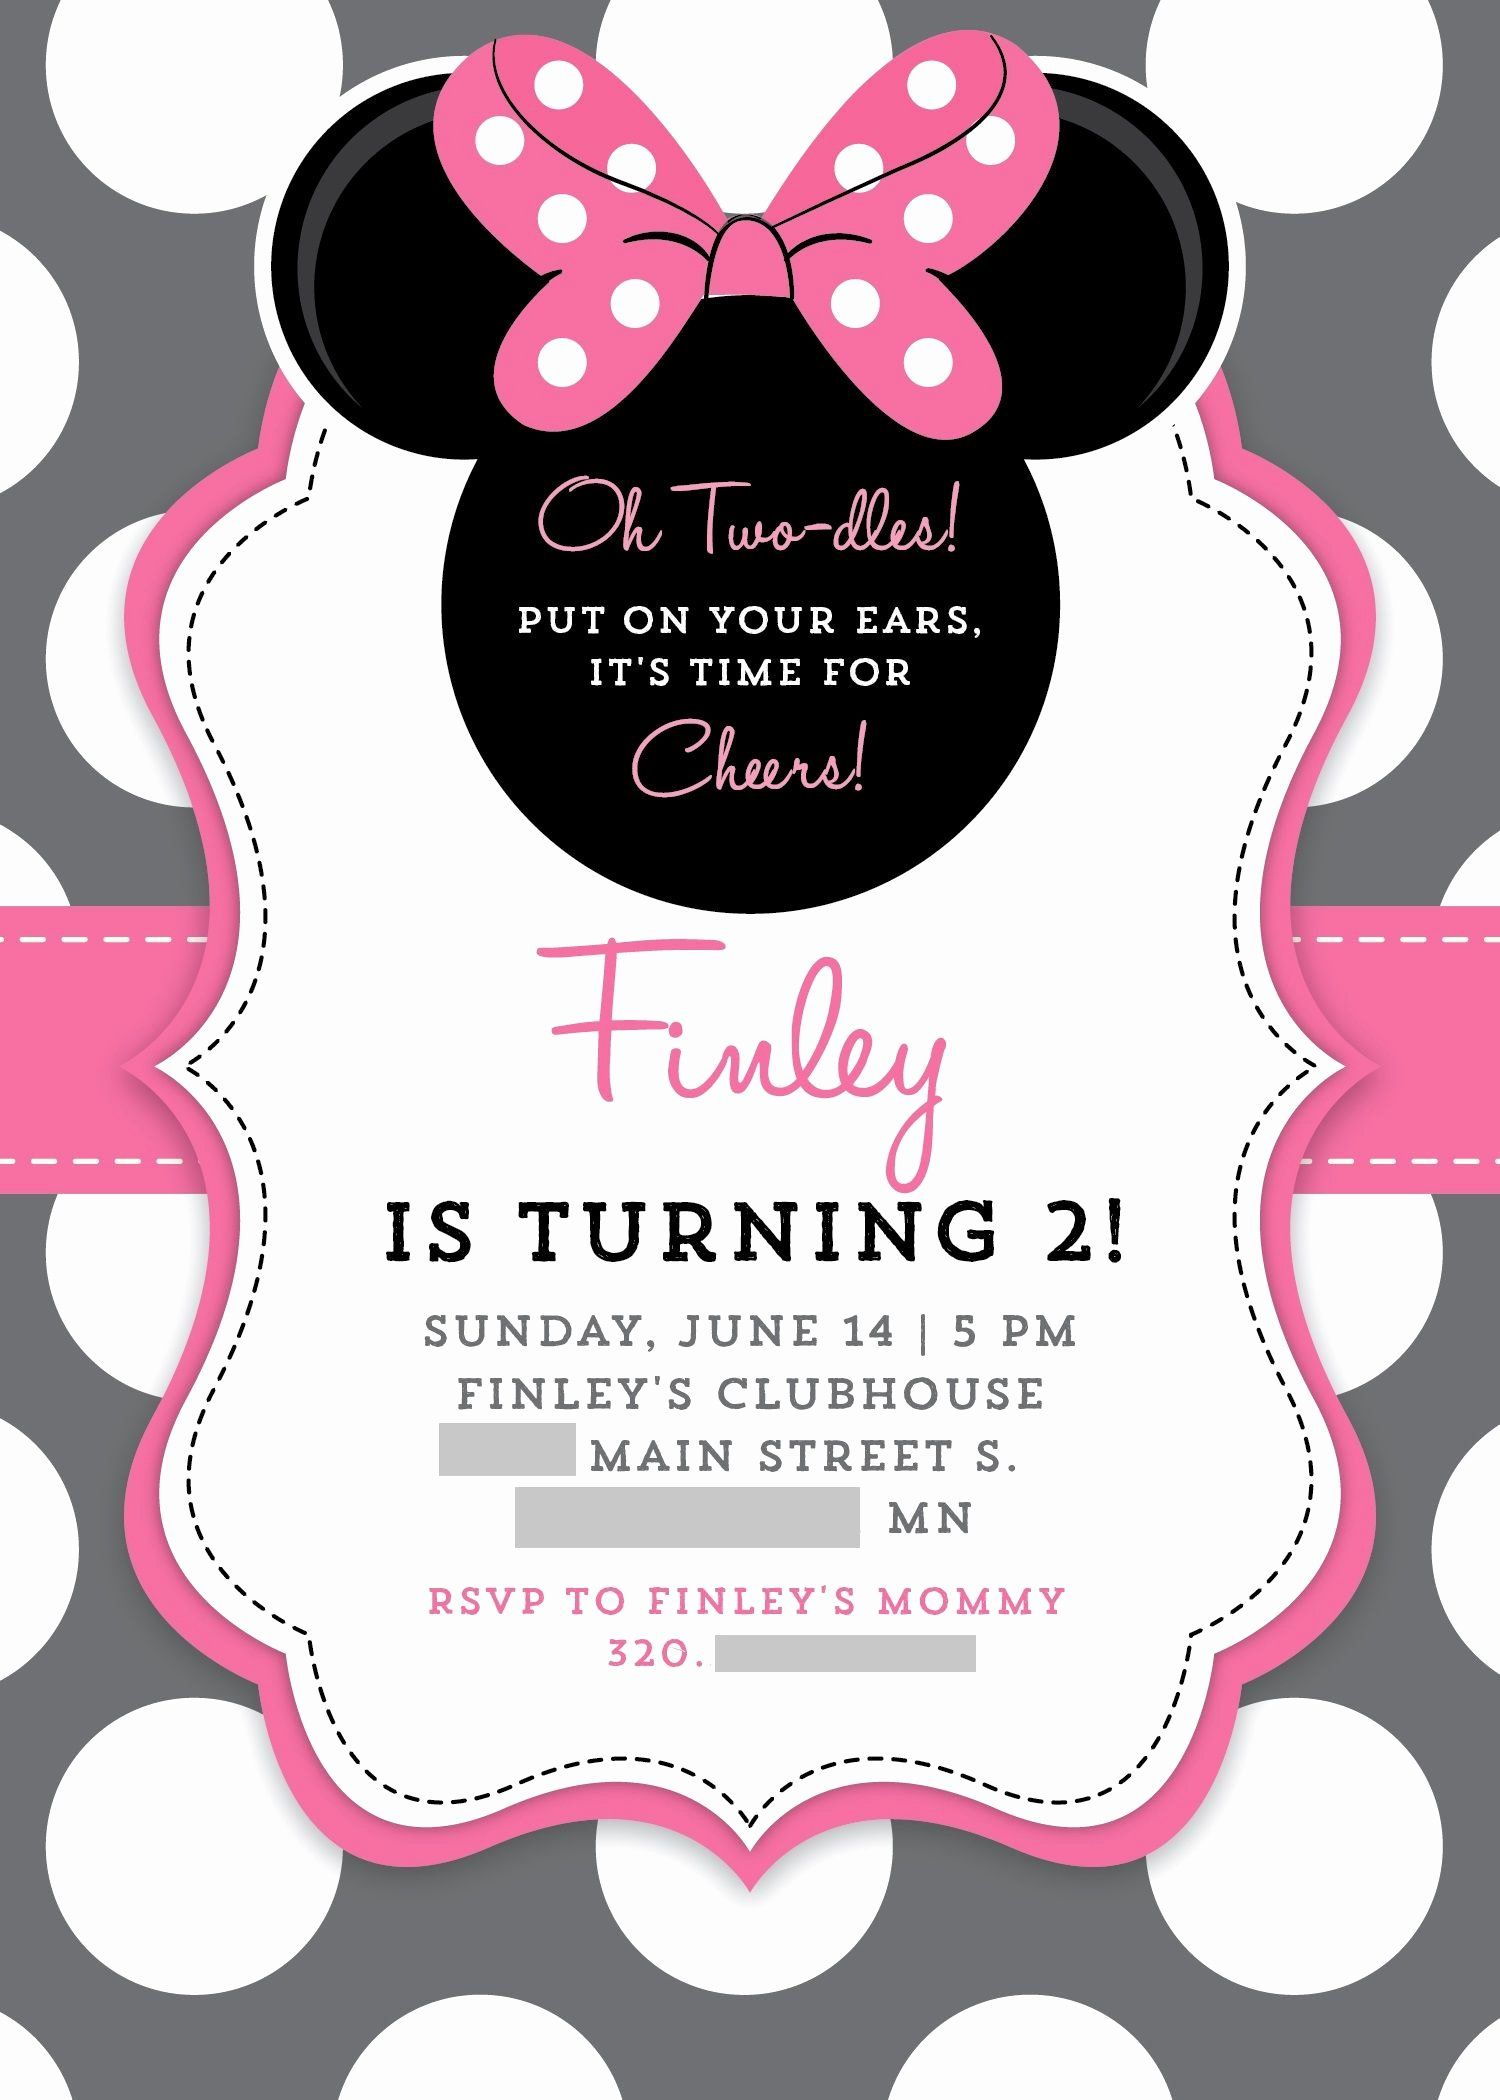 Minnie Mouse Party Invitations Harlem Printable Invitations Minnie Mouse Birthday Invitations Mickey Mouse Birthday Invitations Minnie Mouse Invitations